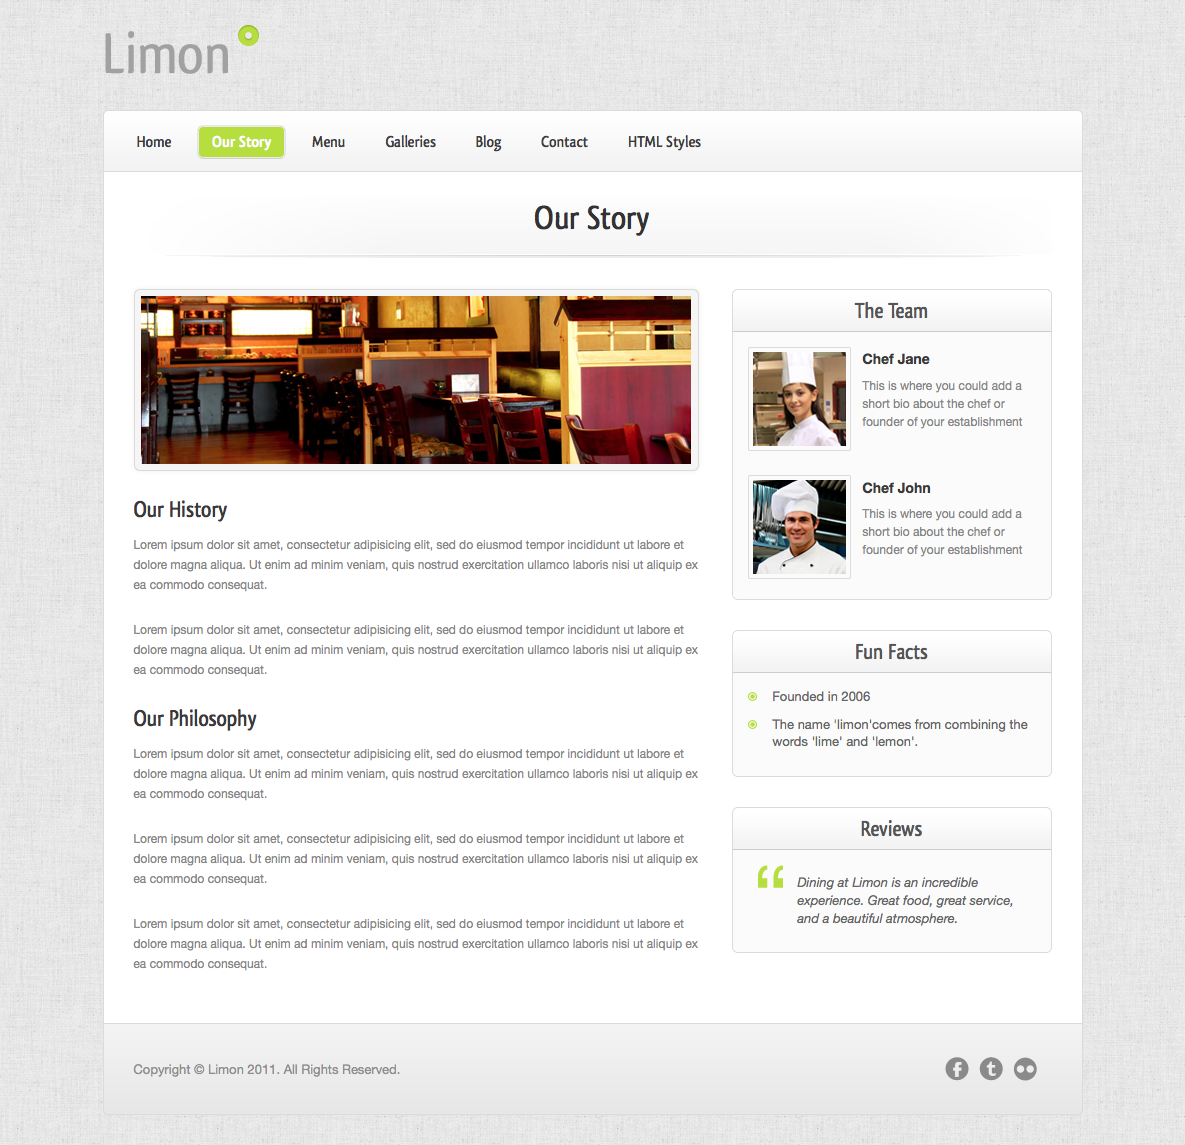 Limon - A Restaurant and Spa Theme - Our Story - Reviews slider and nicely formatting content.